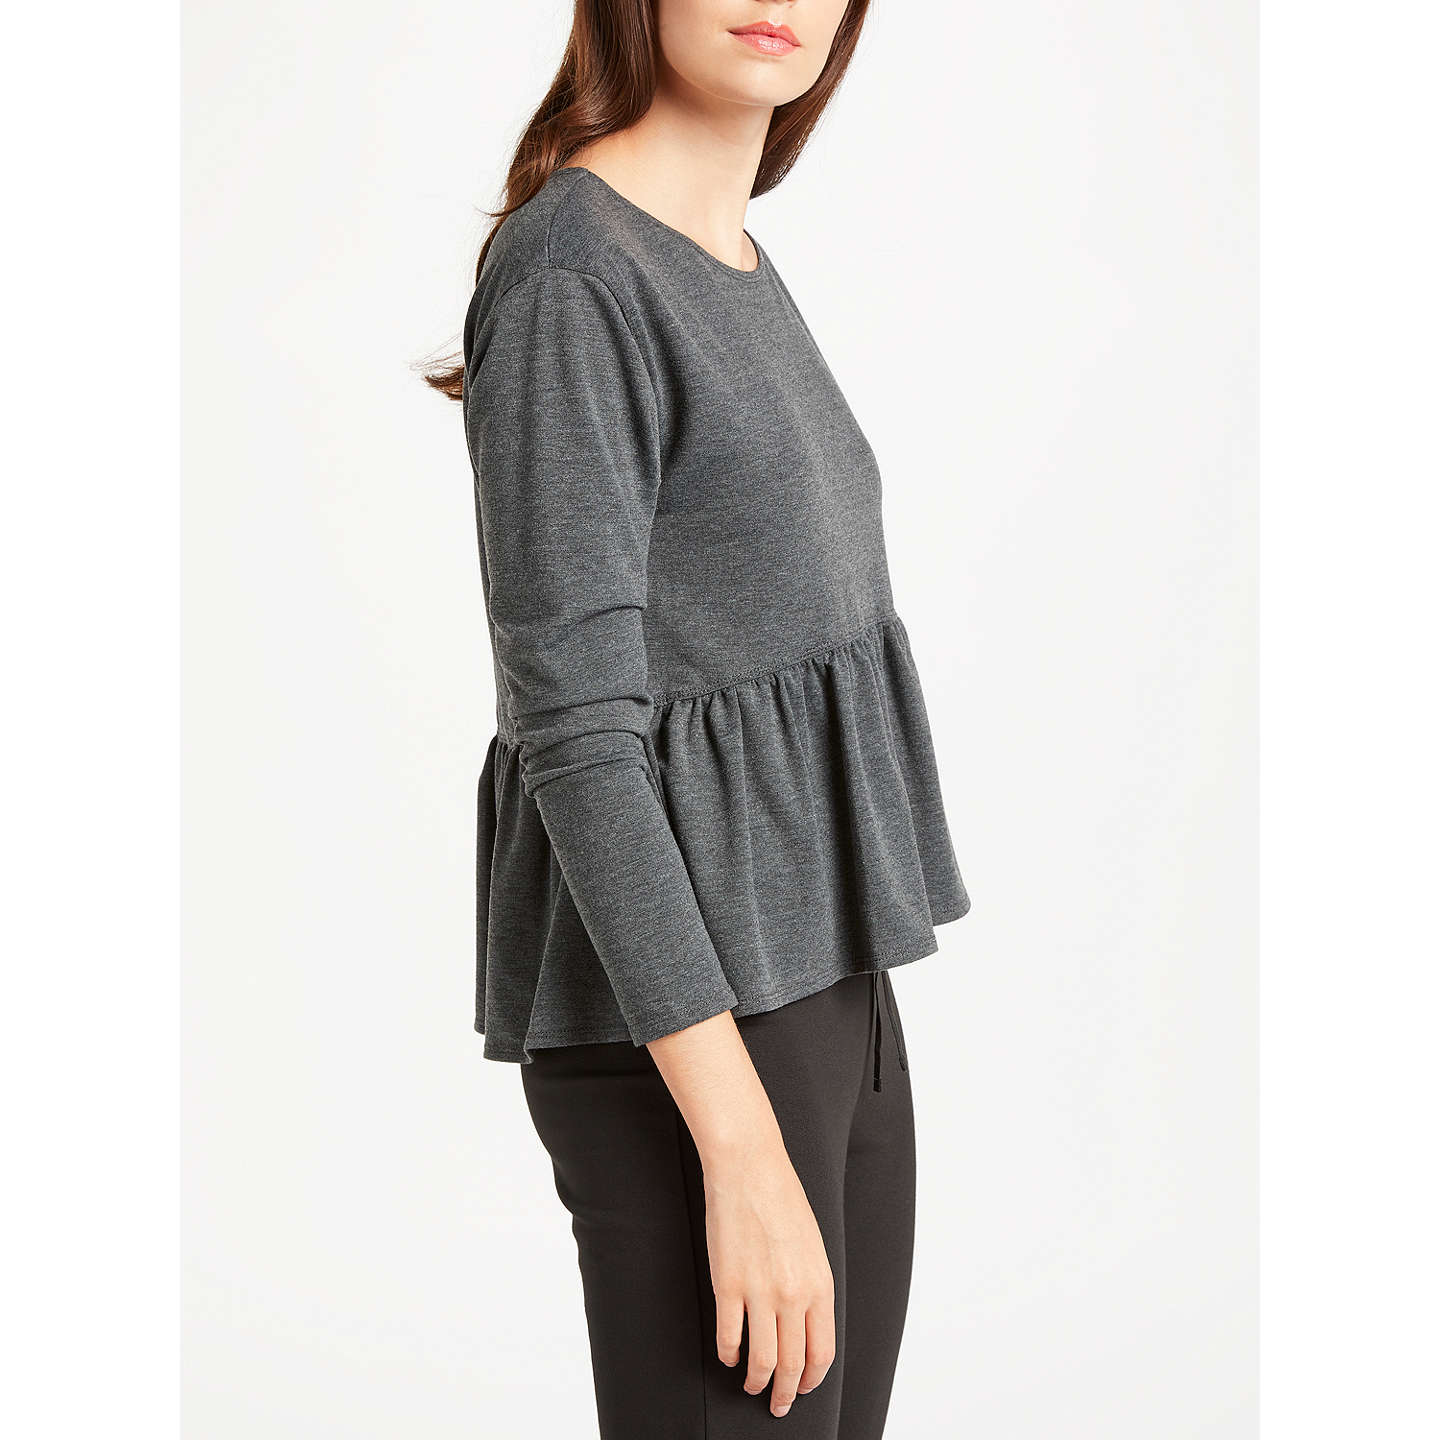 BuyMax Studio Long Sleeve Frill Jersey Top, Charcoal, S Online at johnlewis.com